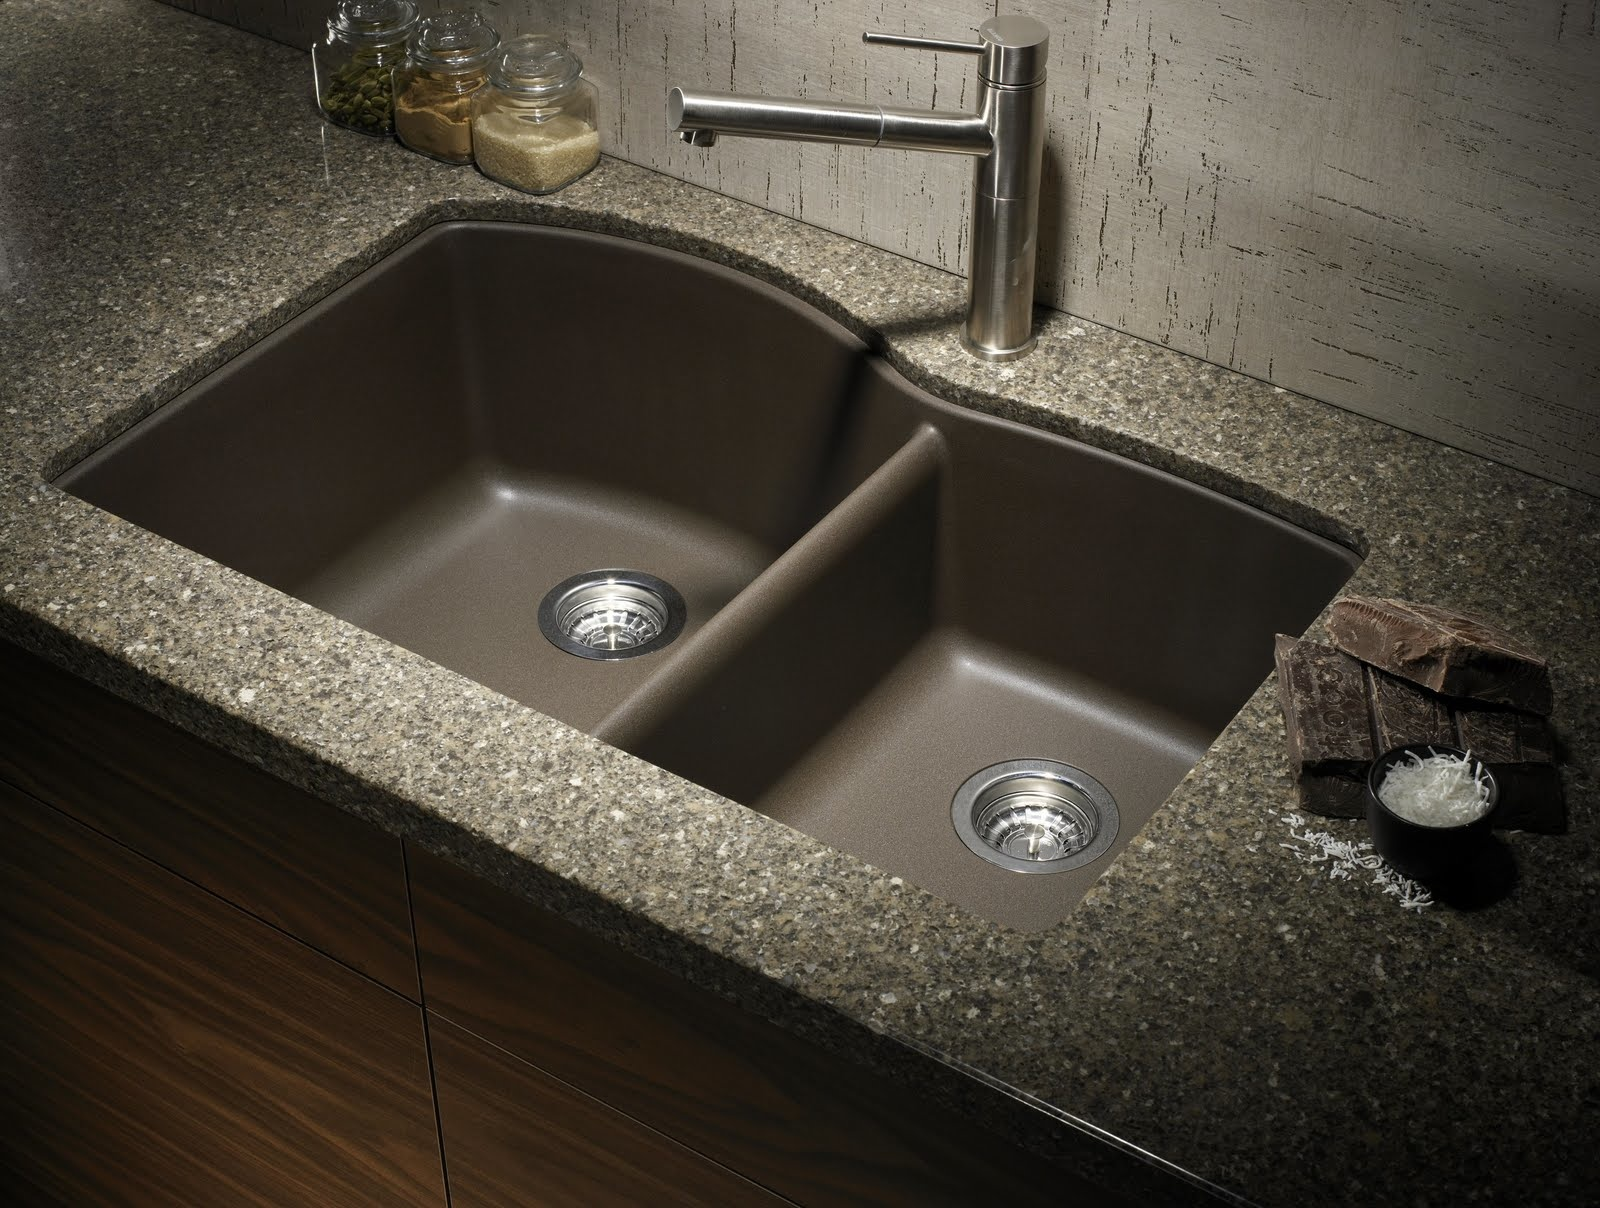 Charming barclay sinks single bowl double bowl stainless kitchen sink barclay sinks for kitchen ideas